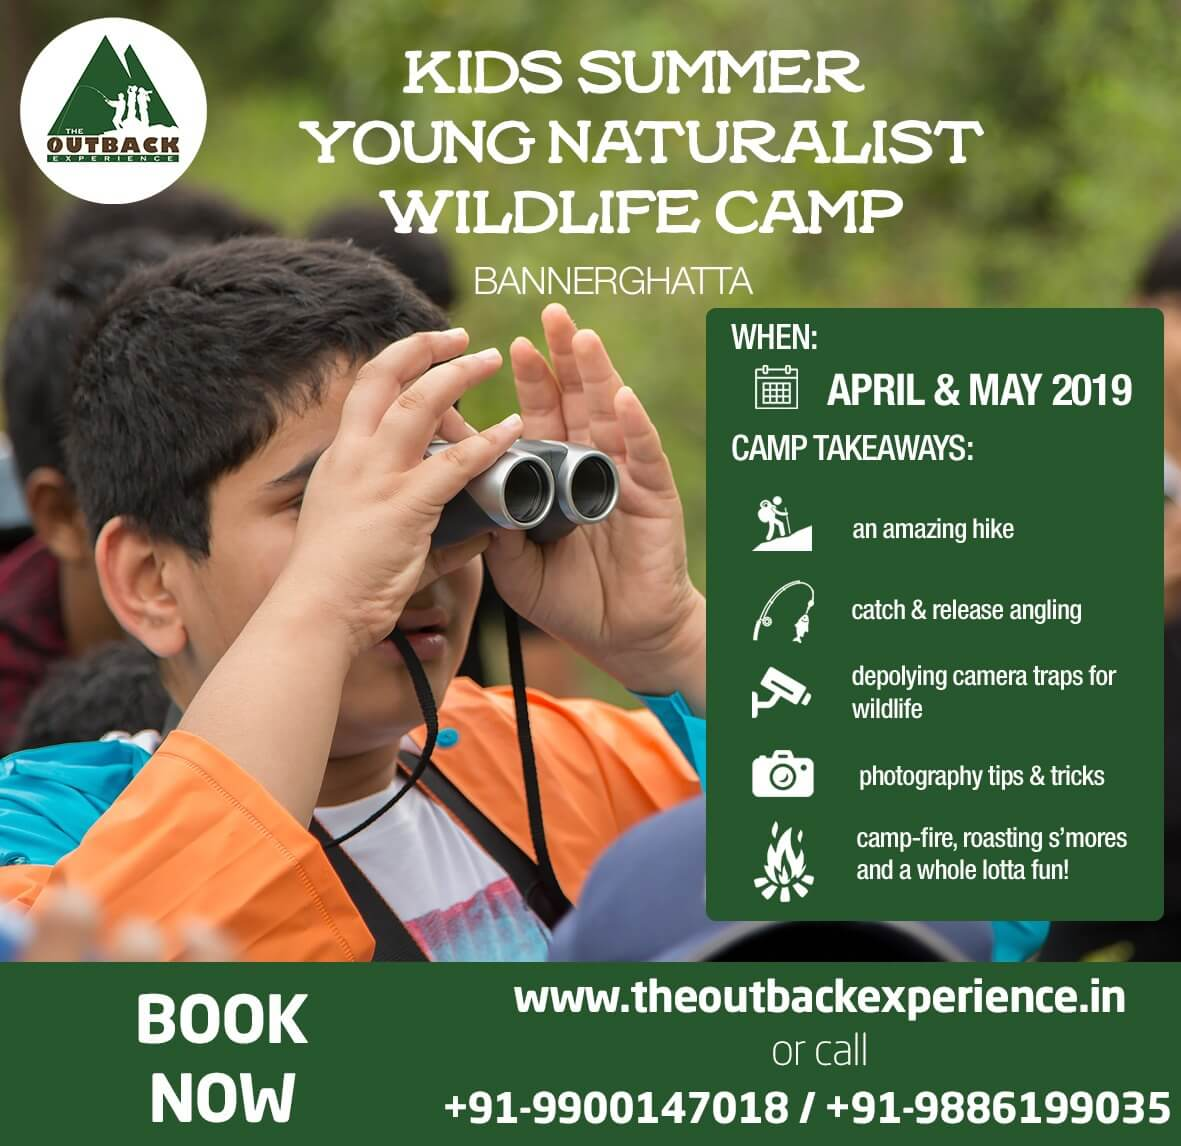 Young Naturalist Wildlife Camp 2019 Cover Image